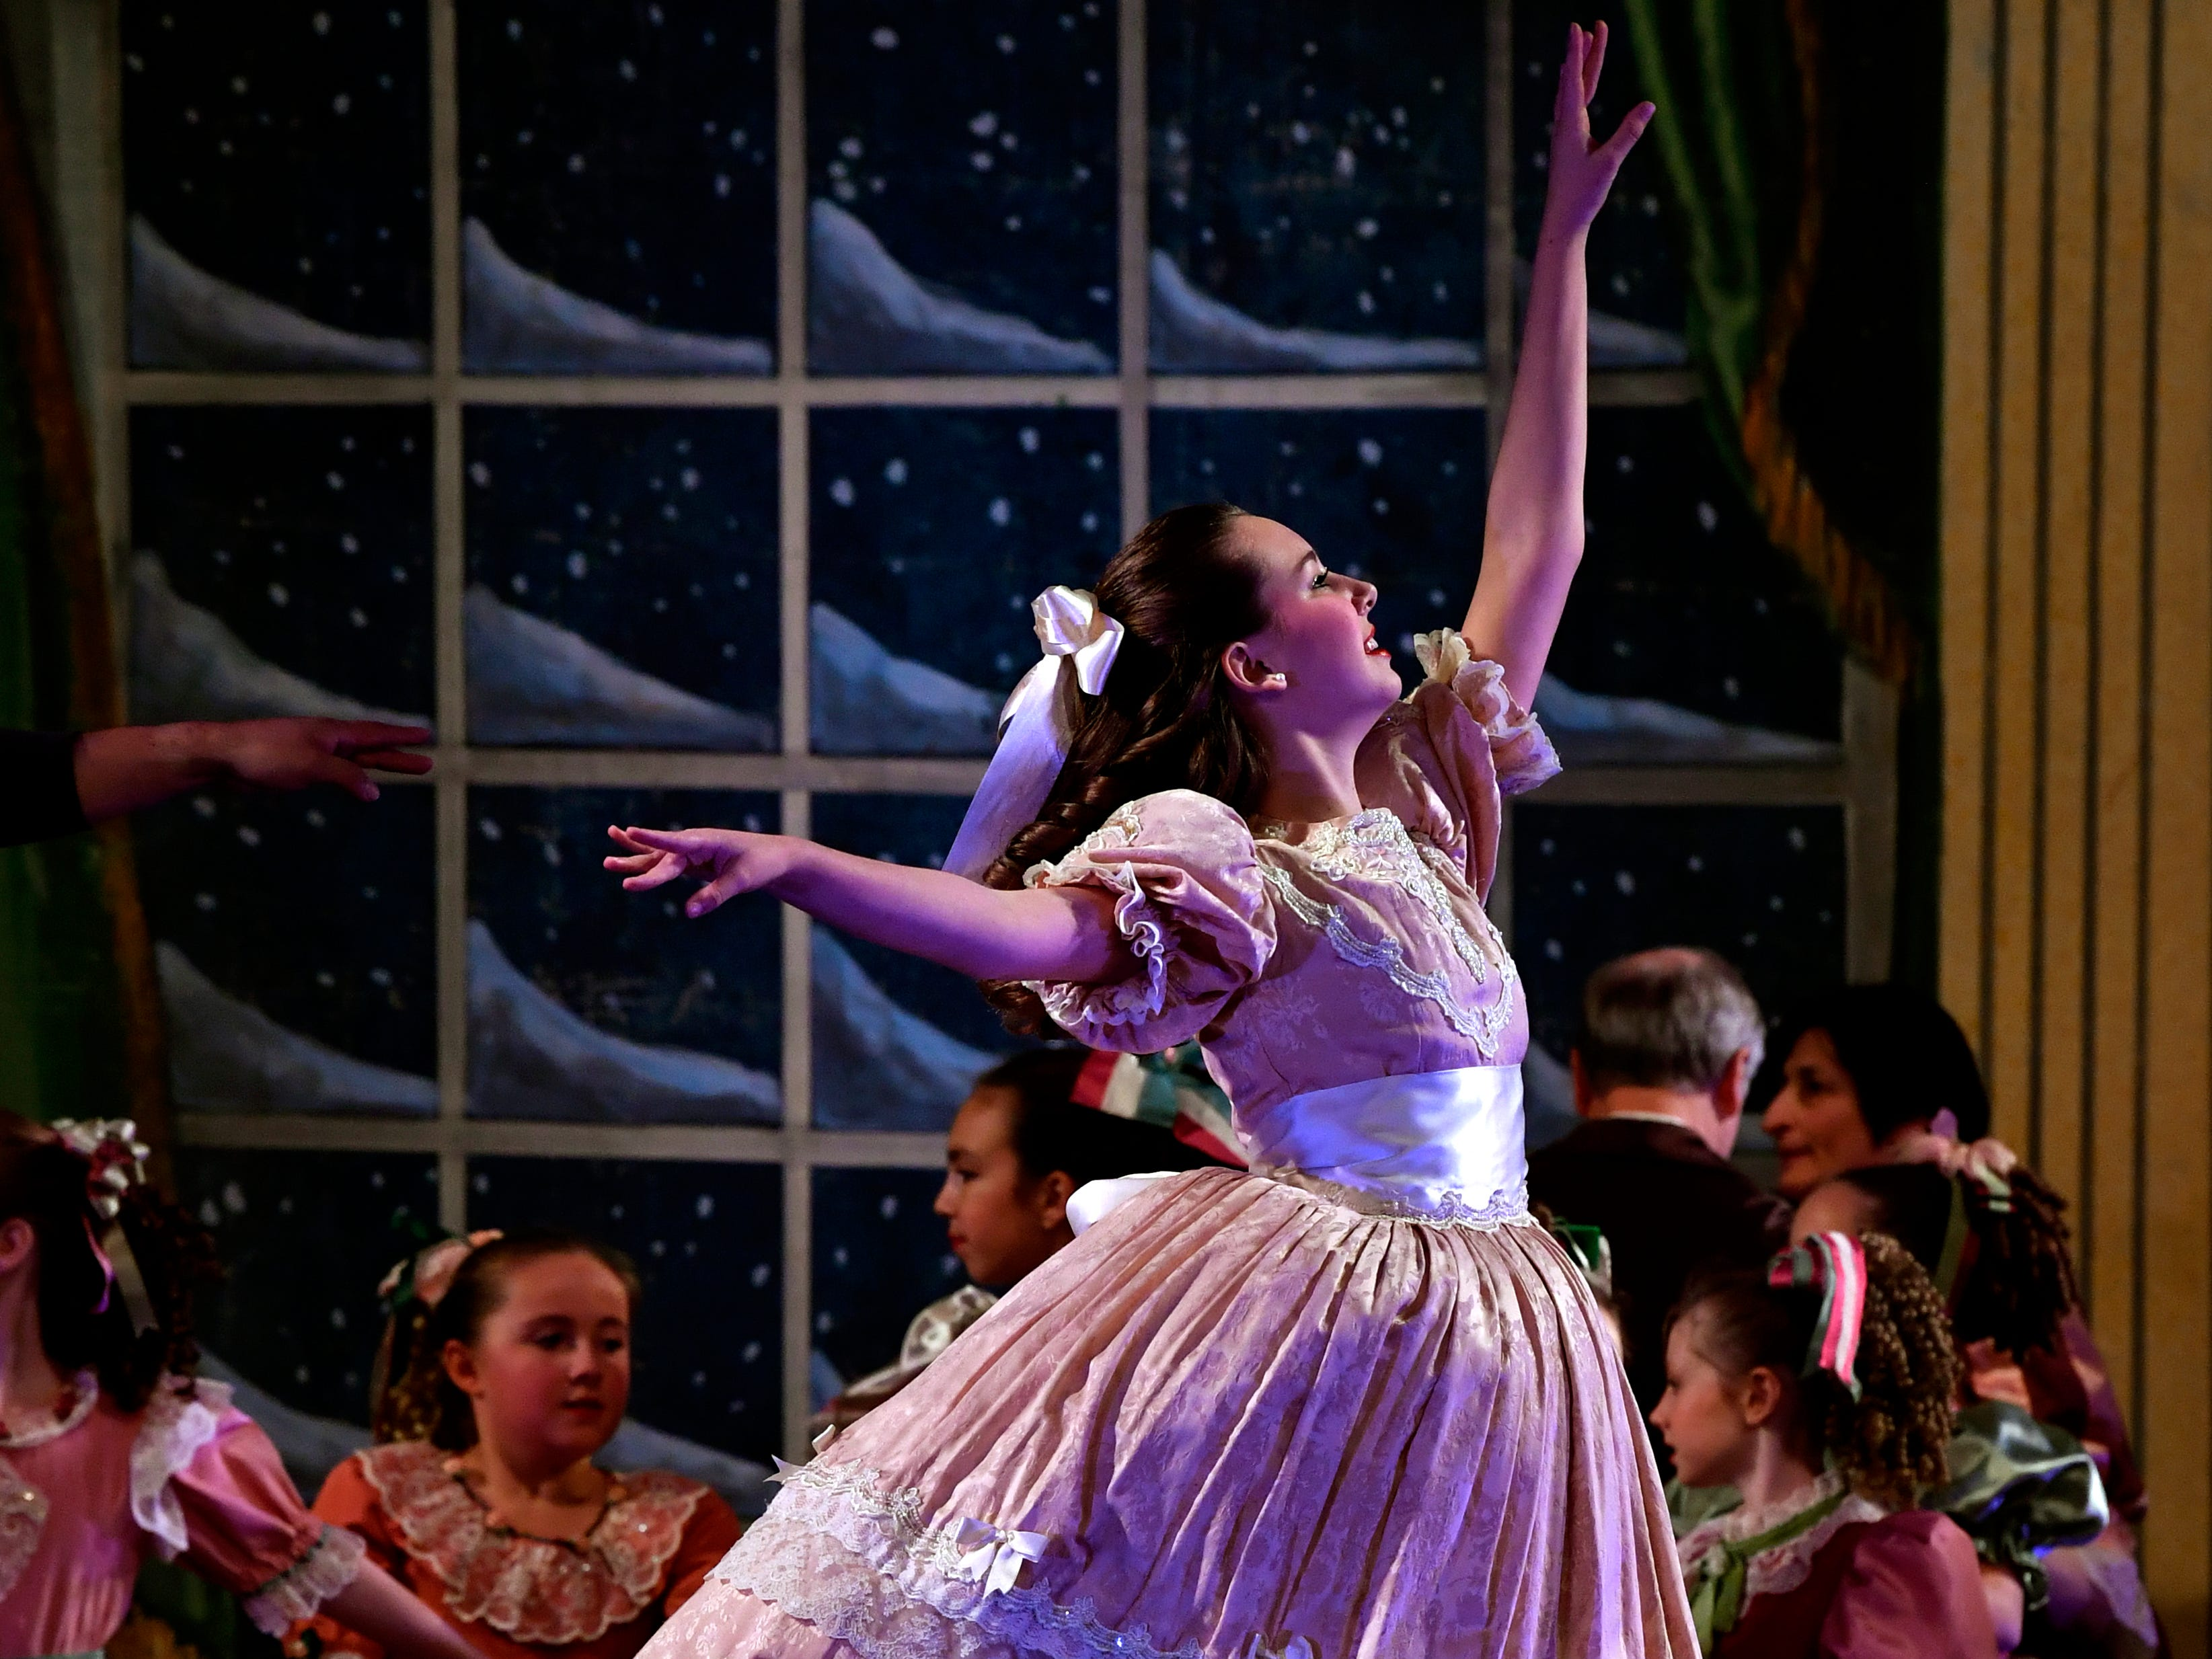 Lily Etter dances as Clara in the Party Scene during the final dress rehearsal of The Nutcracker Thursday Nov. 15, 2018. Three girls played Clara; Hope Longley and Berkley Paul were the other two dancers. This was the 31st year for the Abilene Ballet Theatre production, held at the Paramount Theatre.